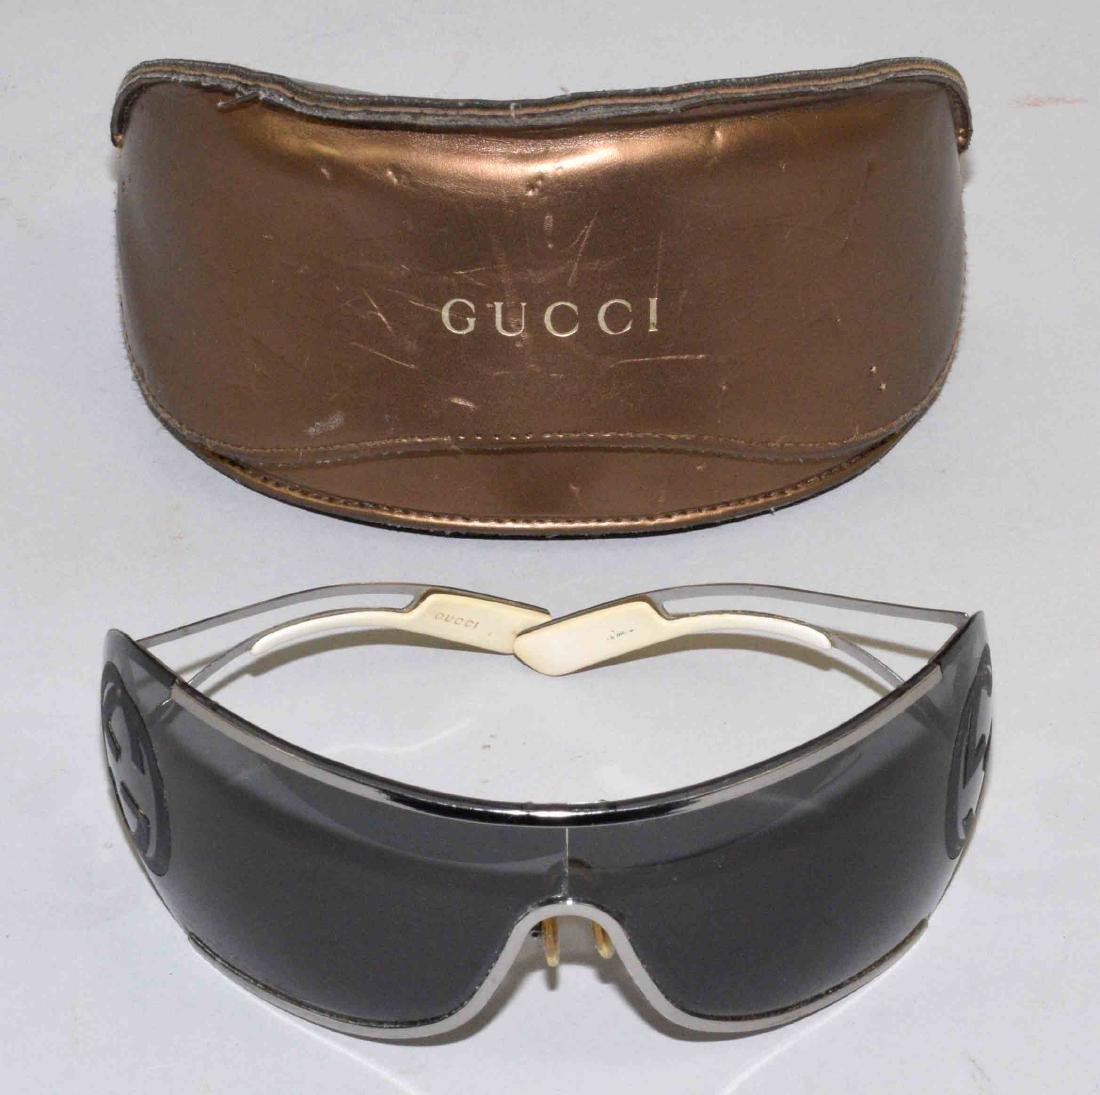 GUCCI SUNGLASSES WITH CASE, case: 7''L x 3.5''H x